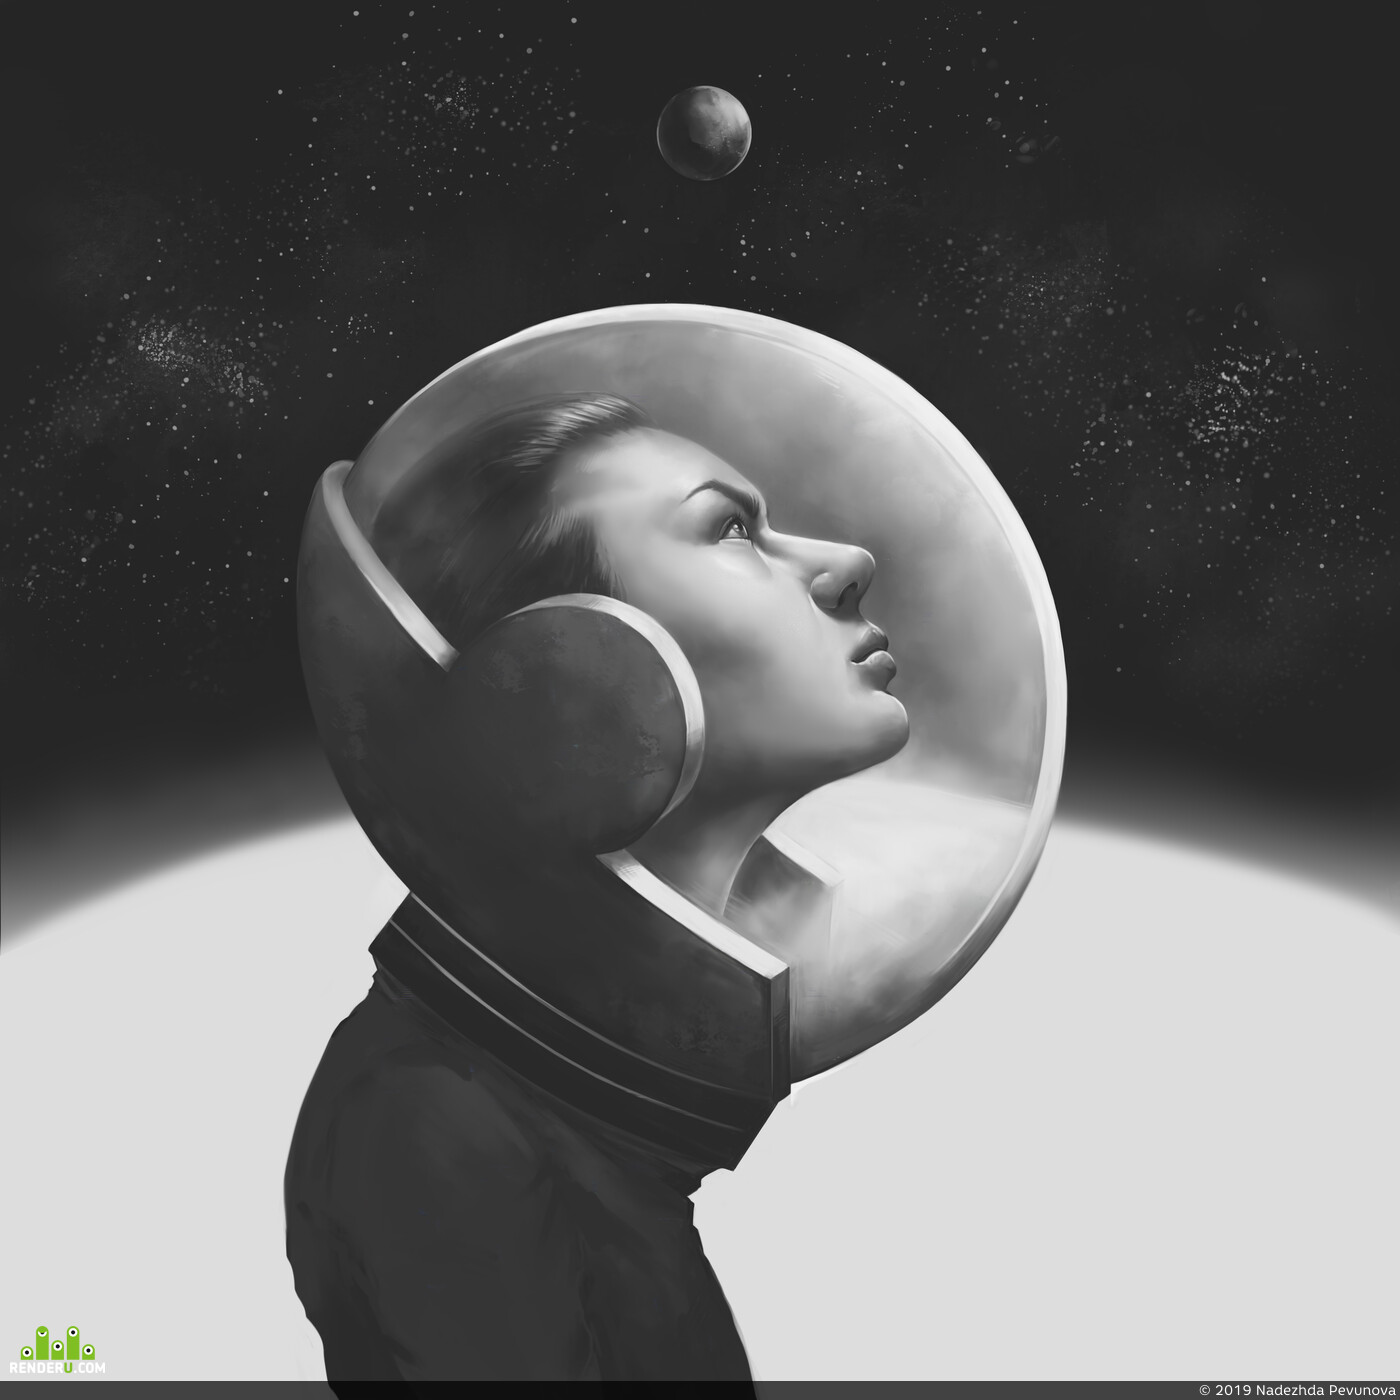 girlportrait, Portrait, spacegirl, constellation, planet, astronaut, illusrtation, Astro, Space, DIGITALDRAWING